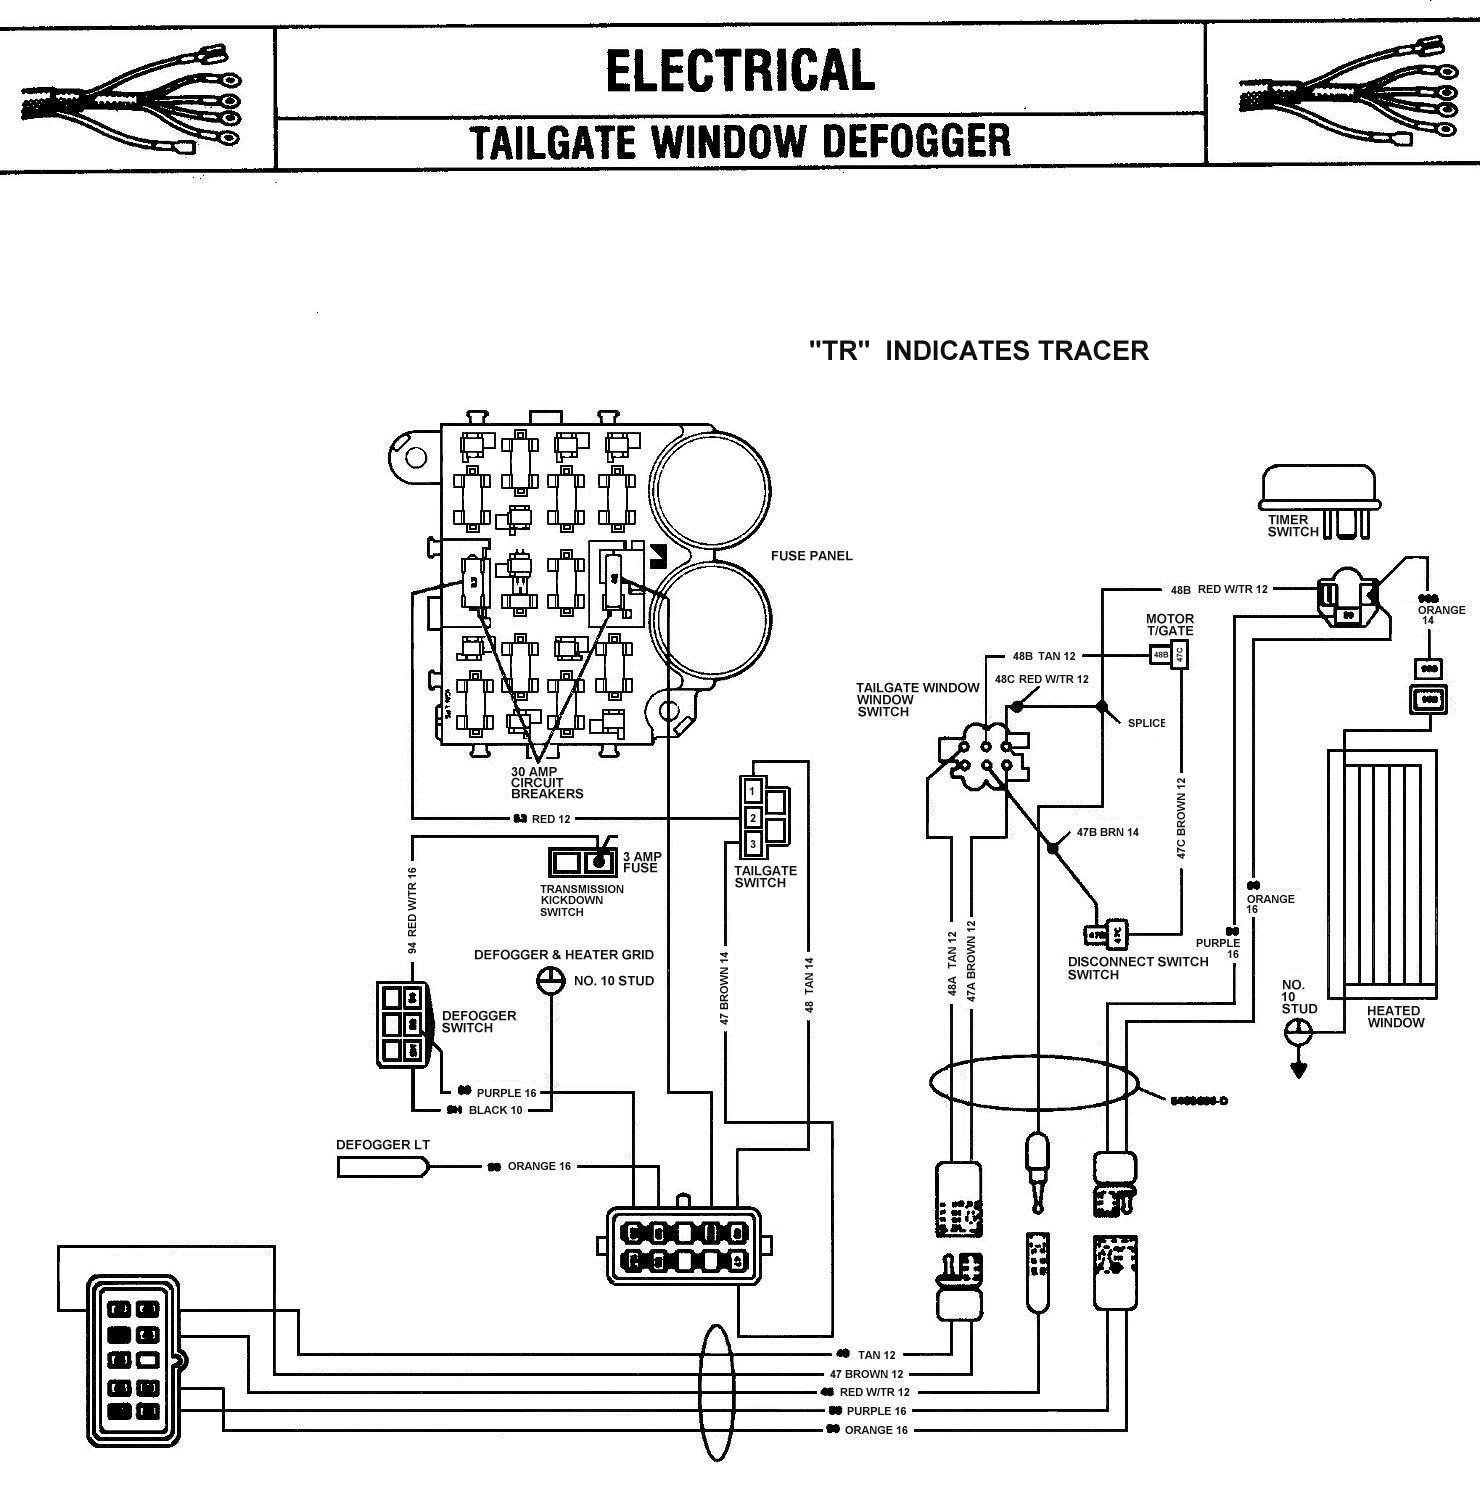 75 jeep cj5 alternator wiring diagram